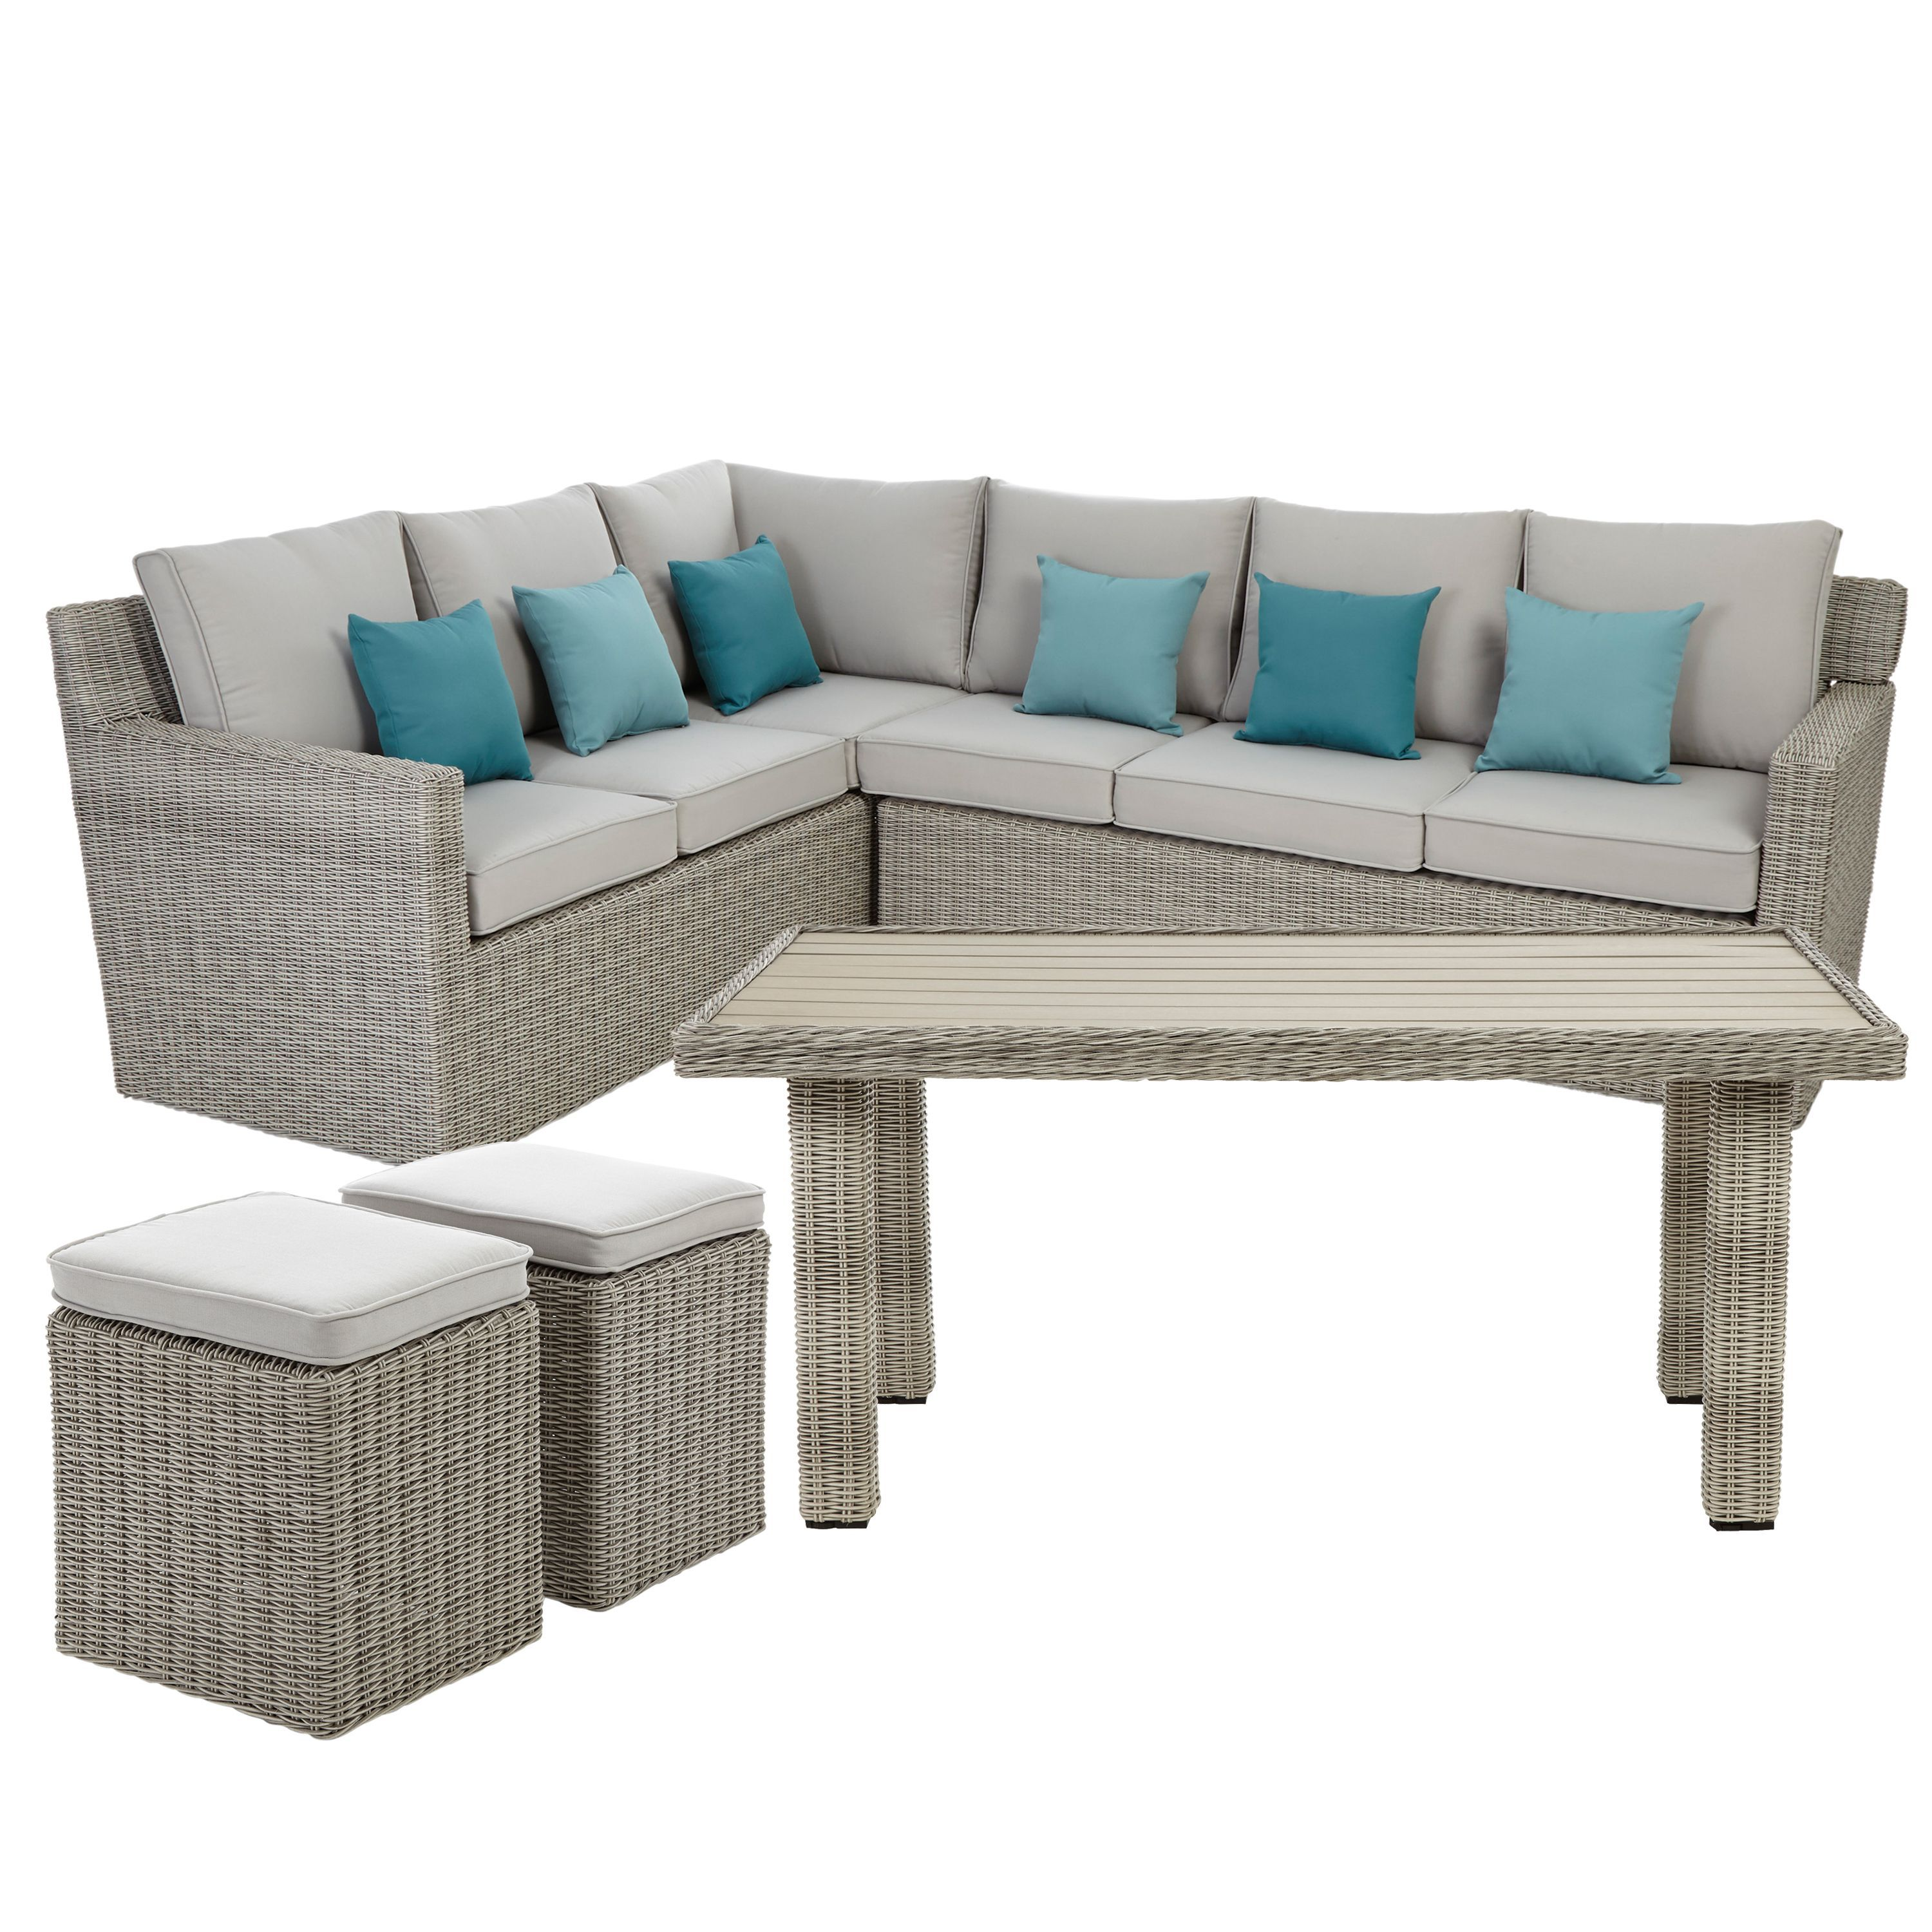 Praslin Rattan Effect 7 Seater Coffee Dining Set Rooms Diy At B Q Leather Living Room Furniture Dining Sofa Contemporary Leather Sofa